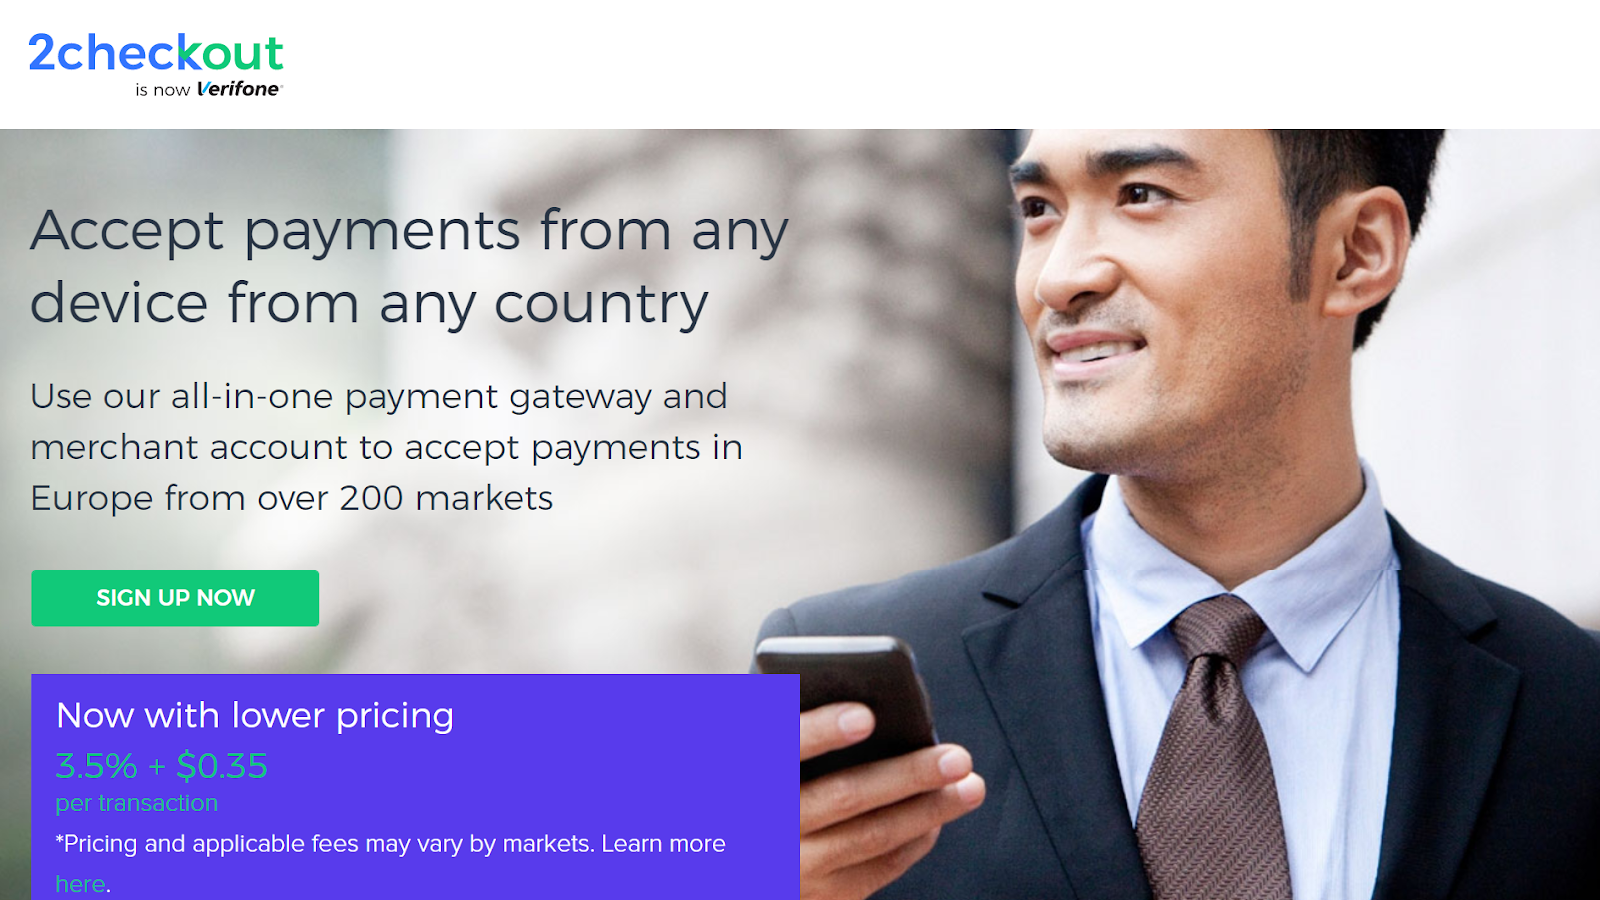 2Checkout recurring payments